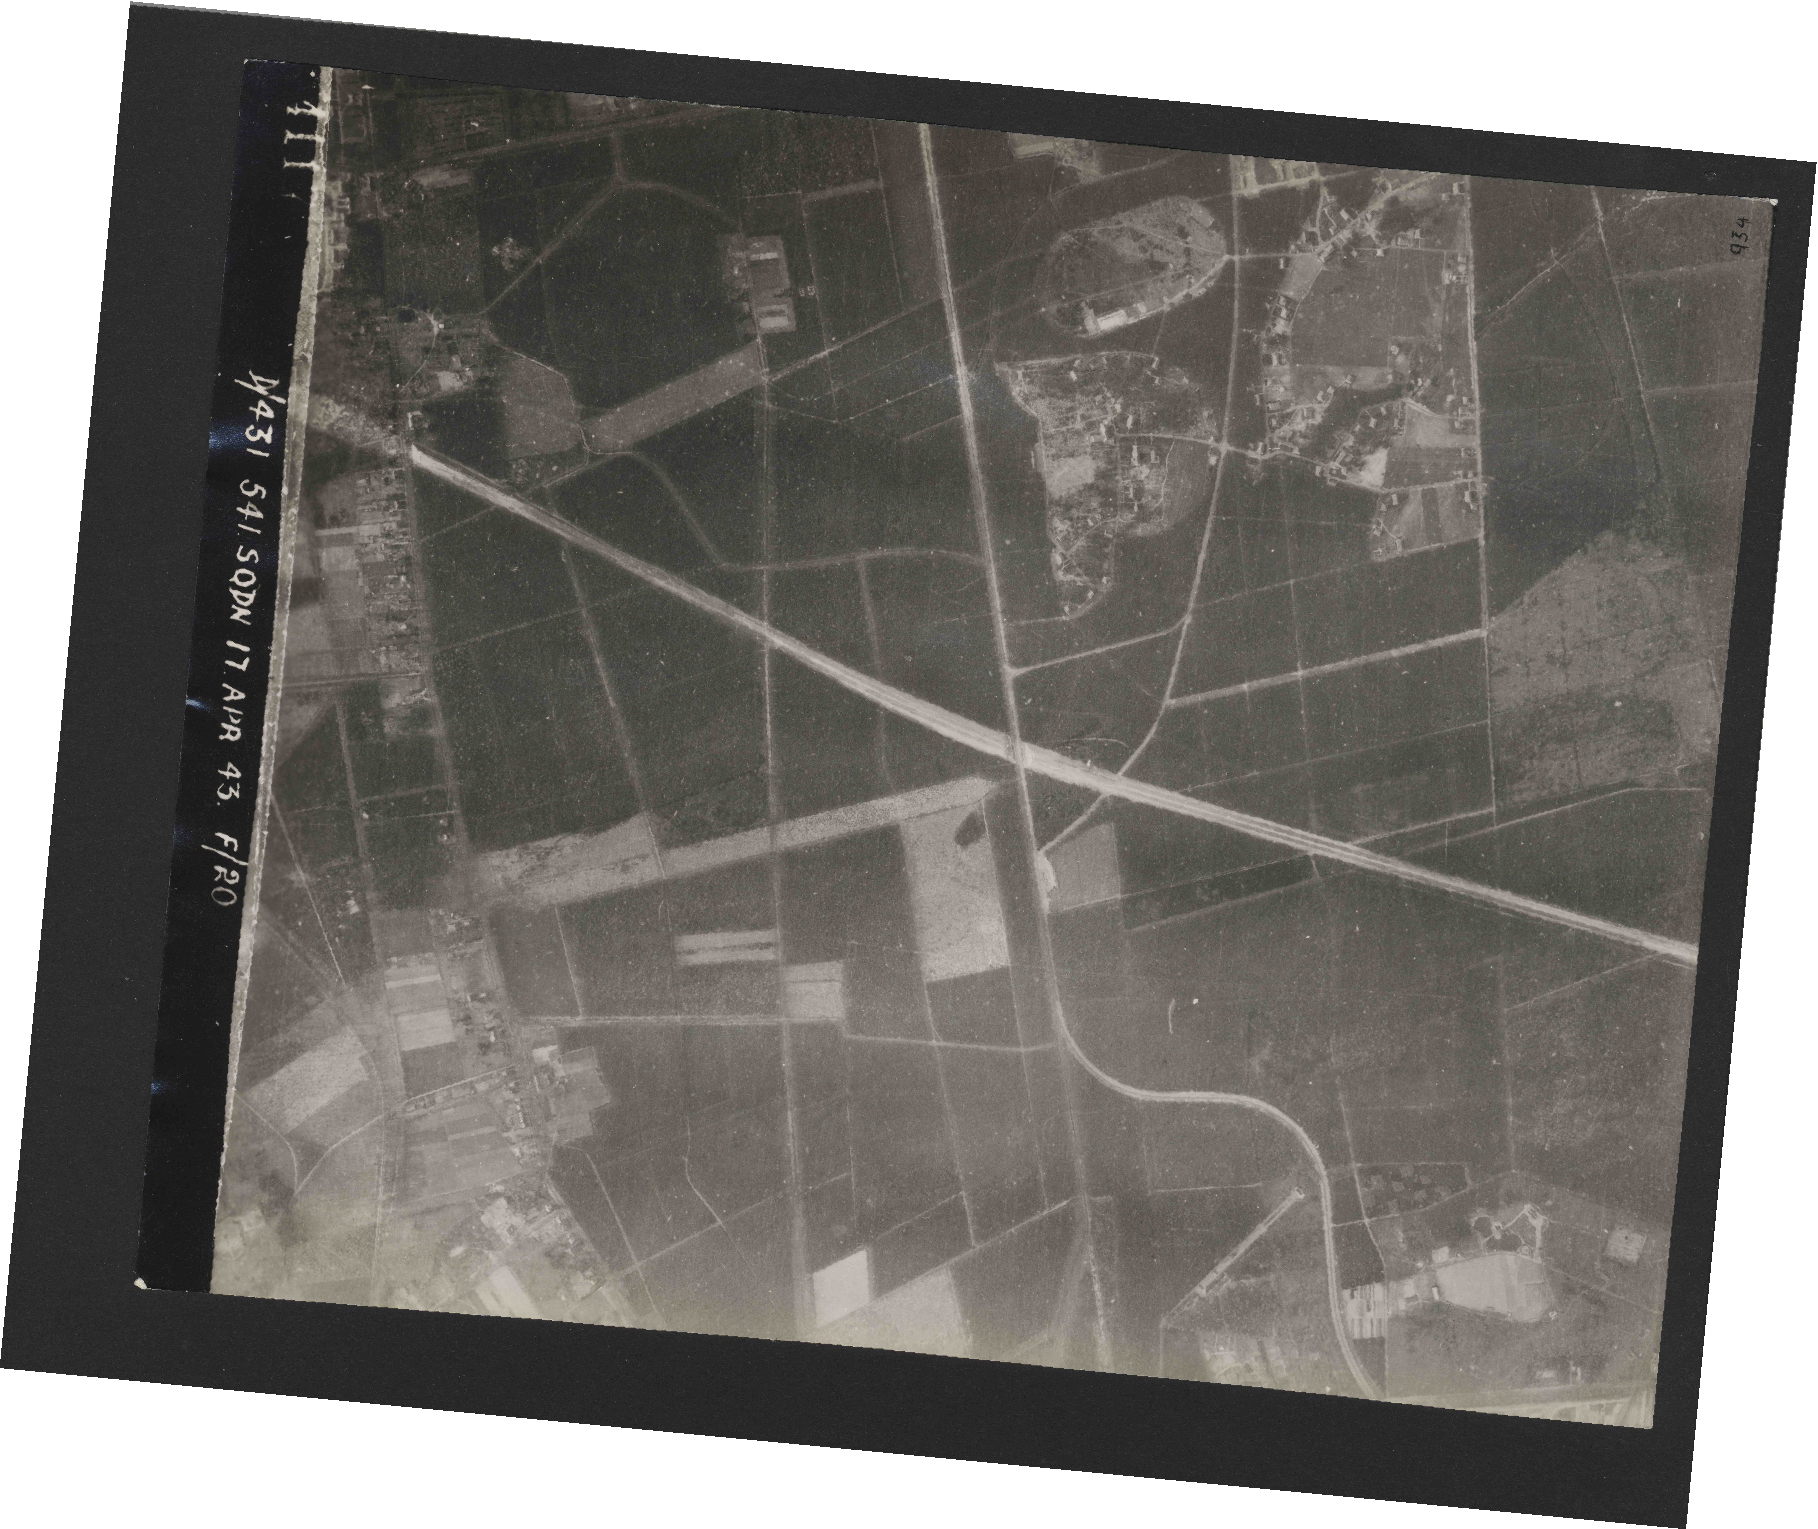 Collection RAF aerial photos 1940-1945 - flight 329, run 08, photo 4117